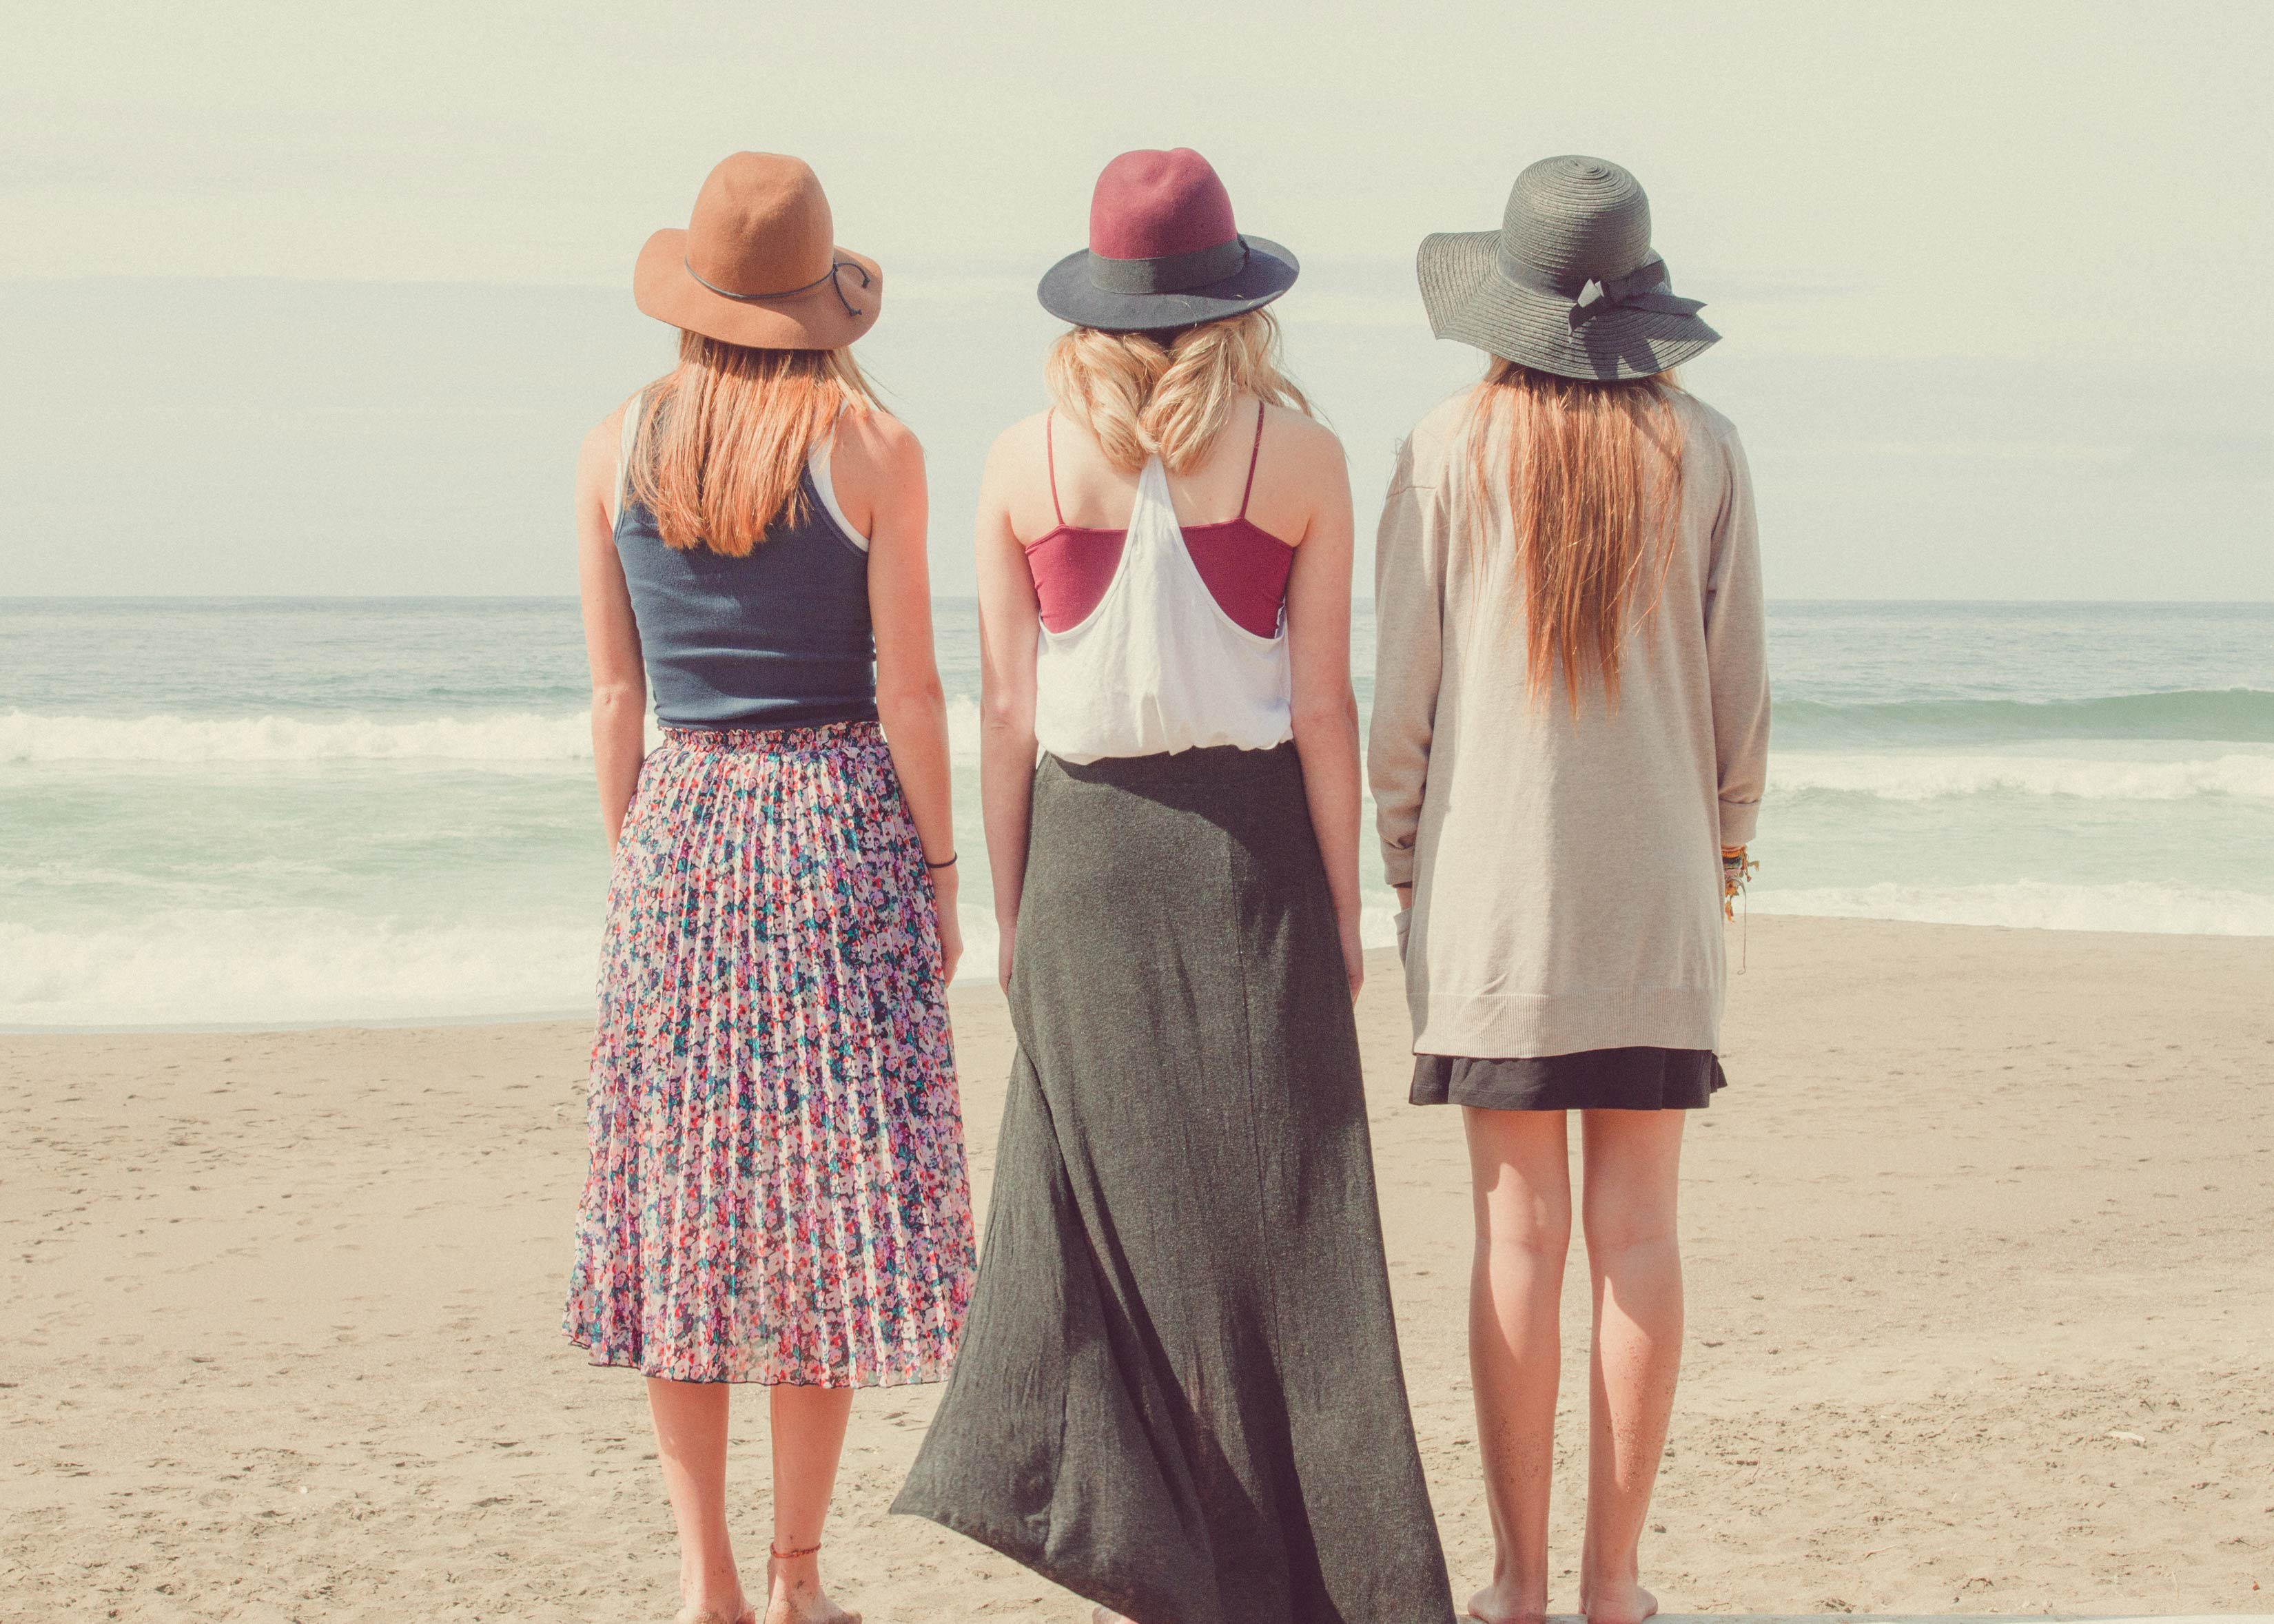 Group of friends on a beach